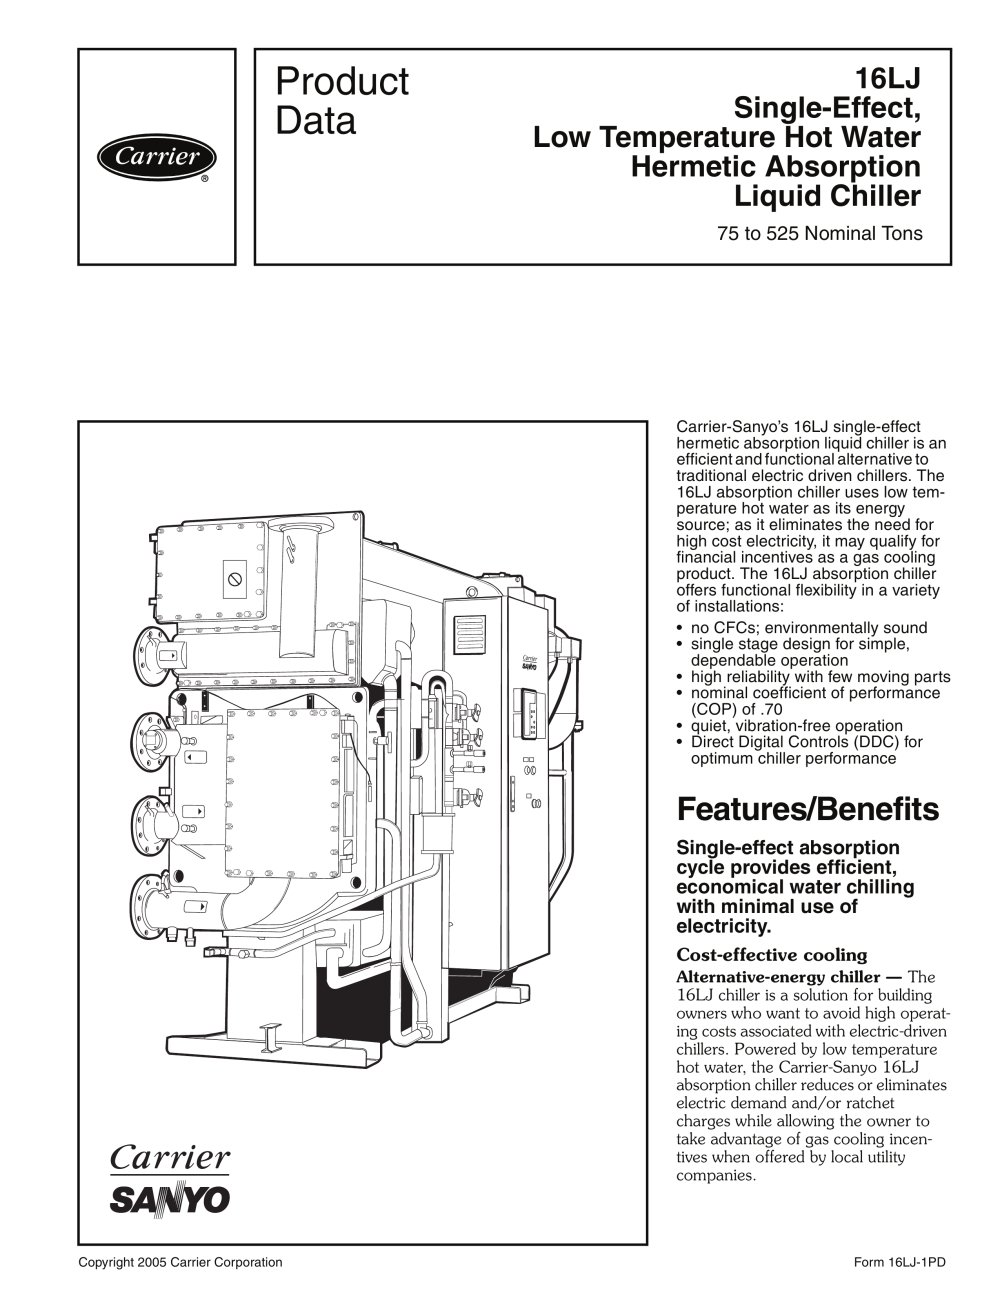 Carrier Commercial Chiller Diagram Electrical Wiring Diagrams Piping Refrigeration 16lj Single Effect Low Temperature Hot Water Hermetic Absorption